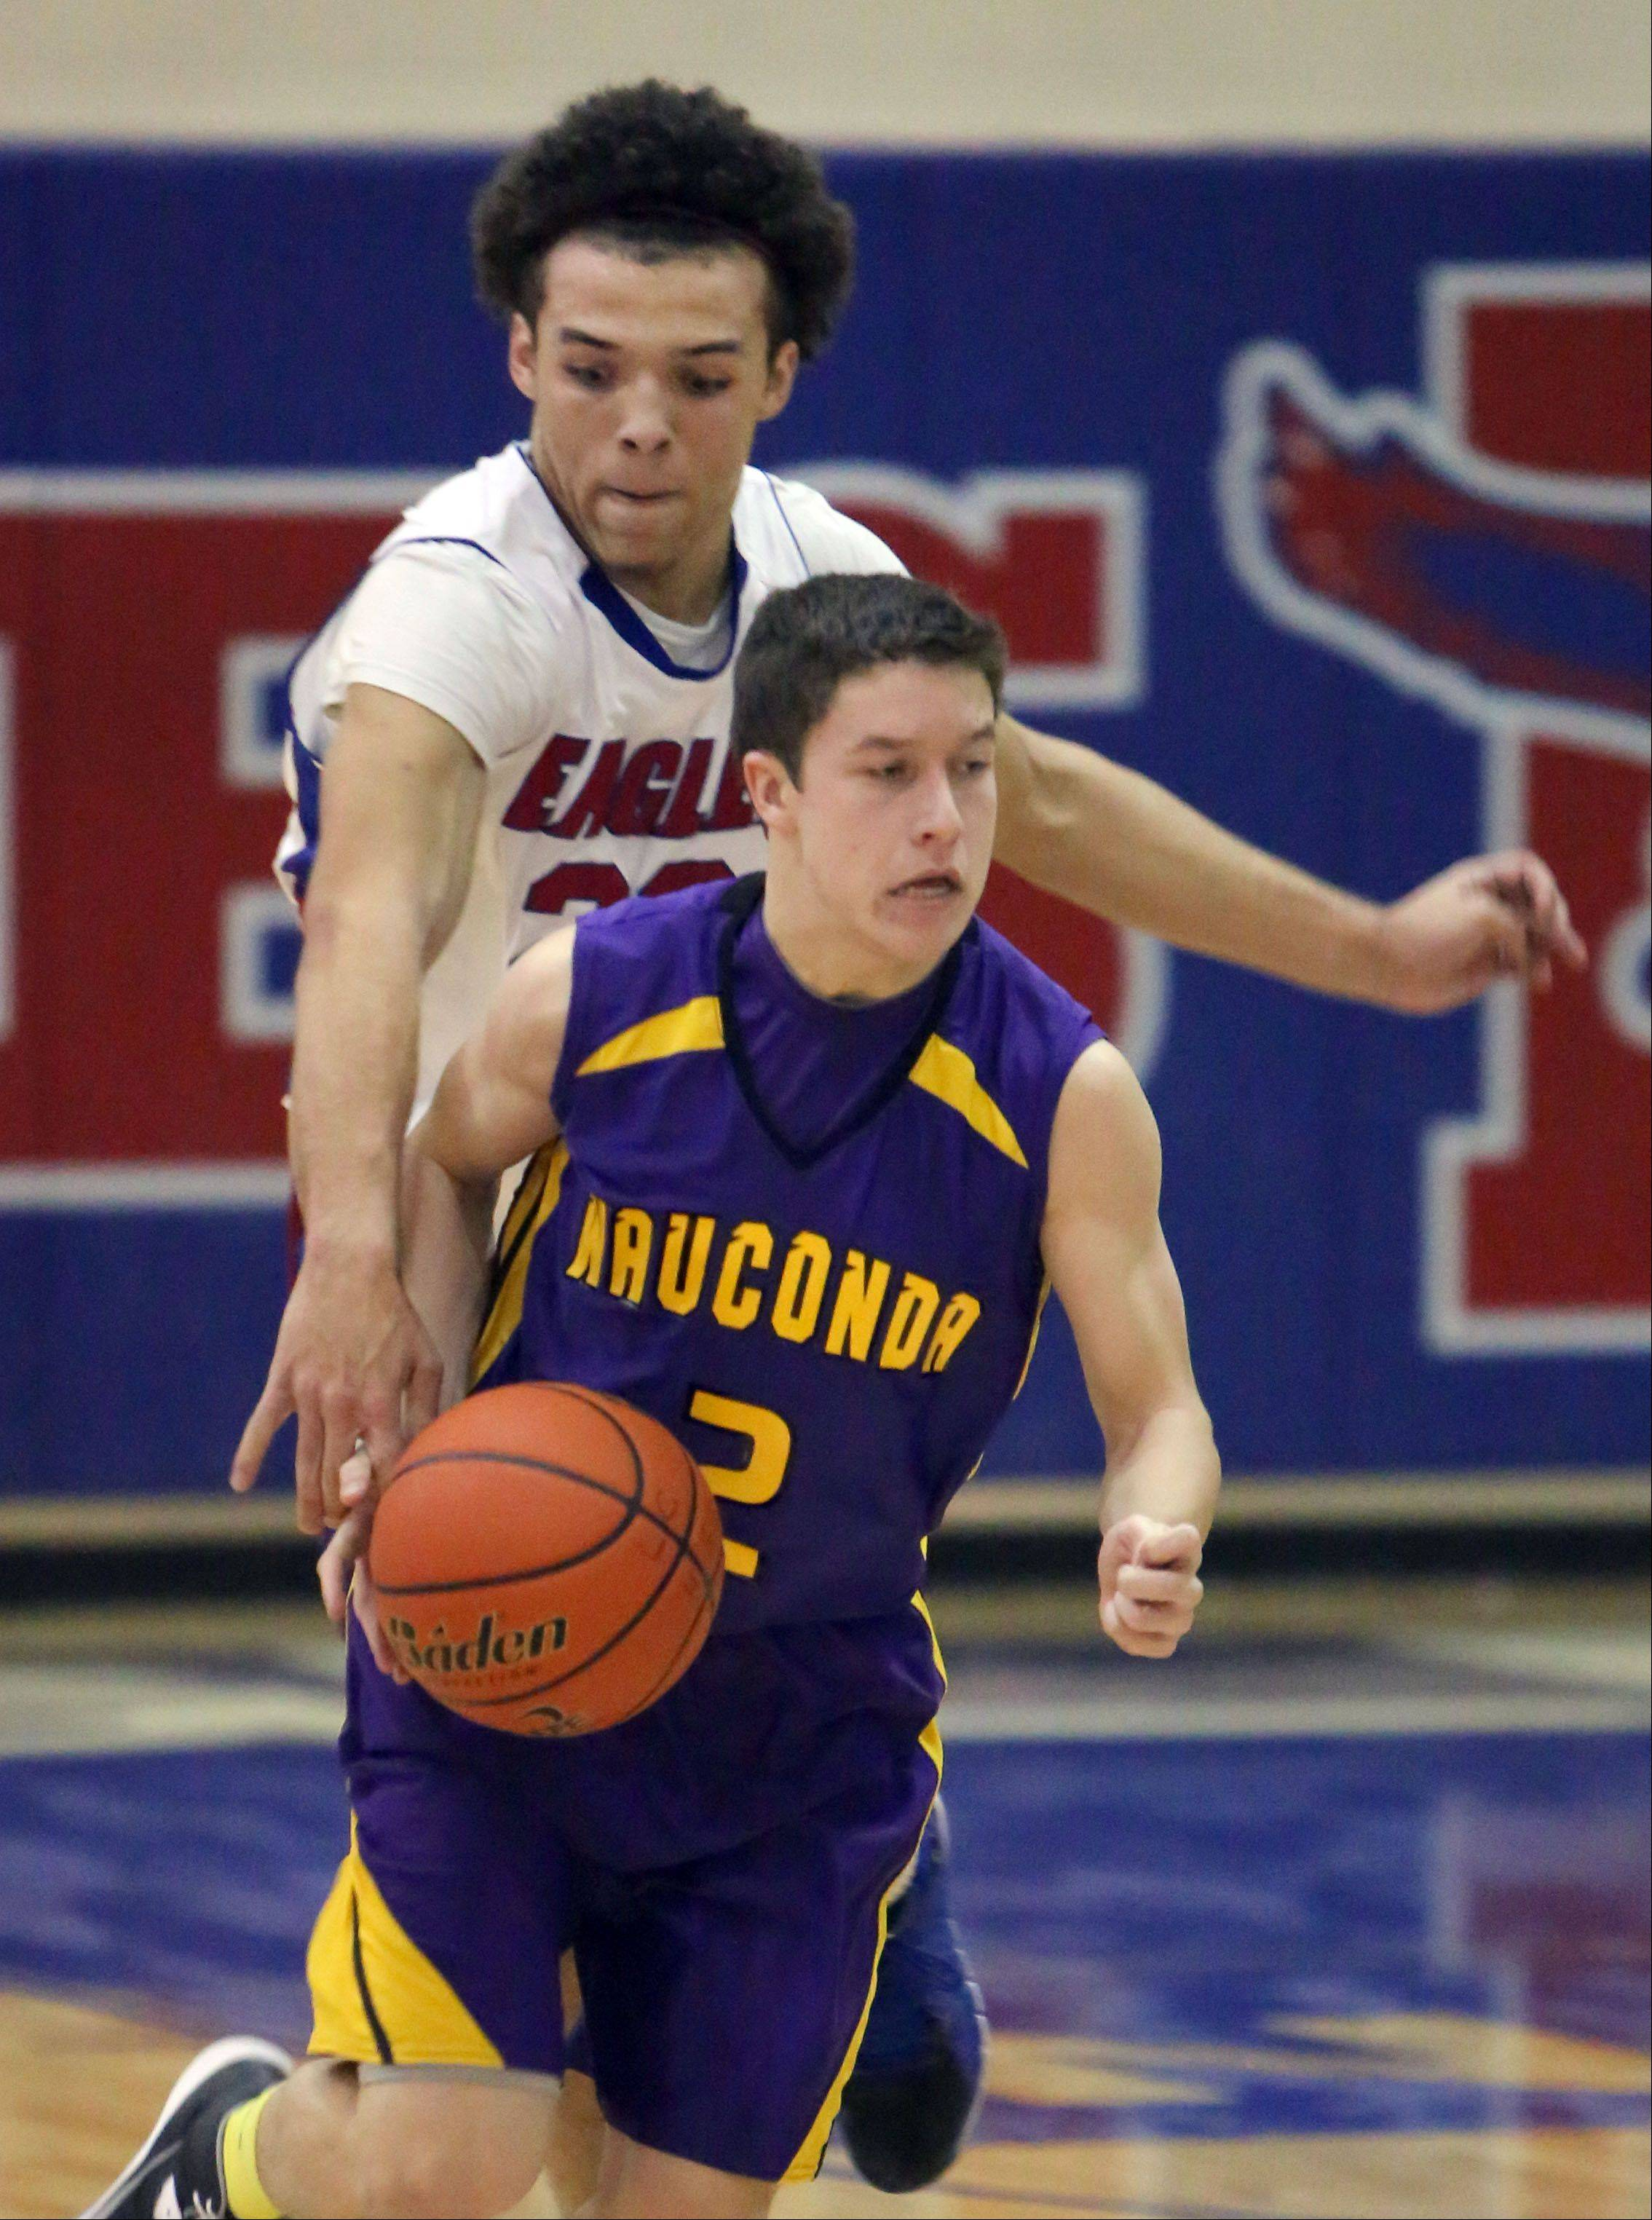 Lakes' Tramone Hudson, left, keeps up with Wauconda's Brian Malisheski.